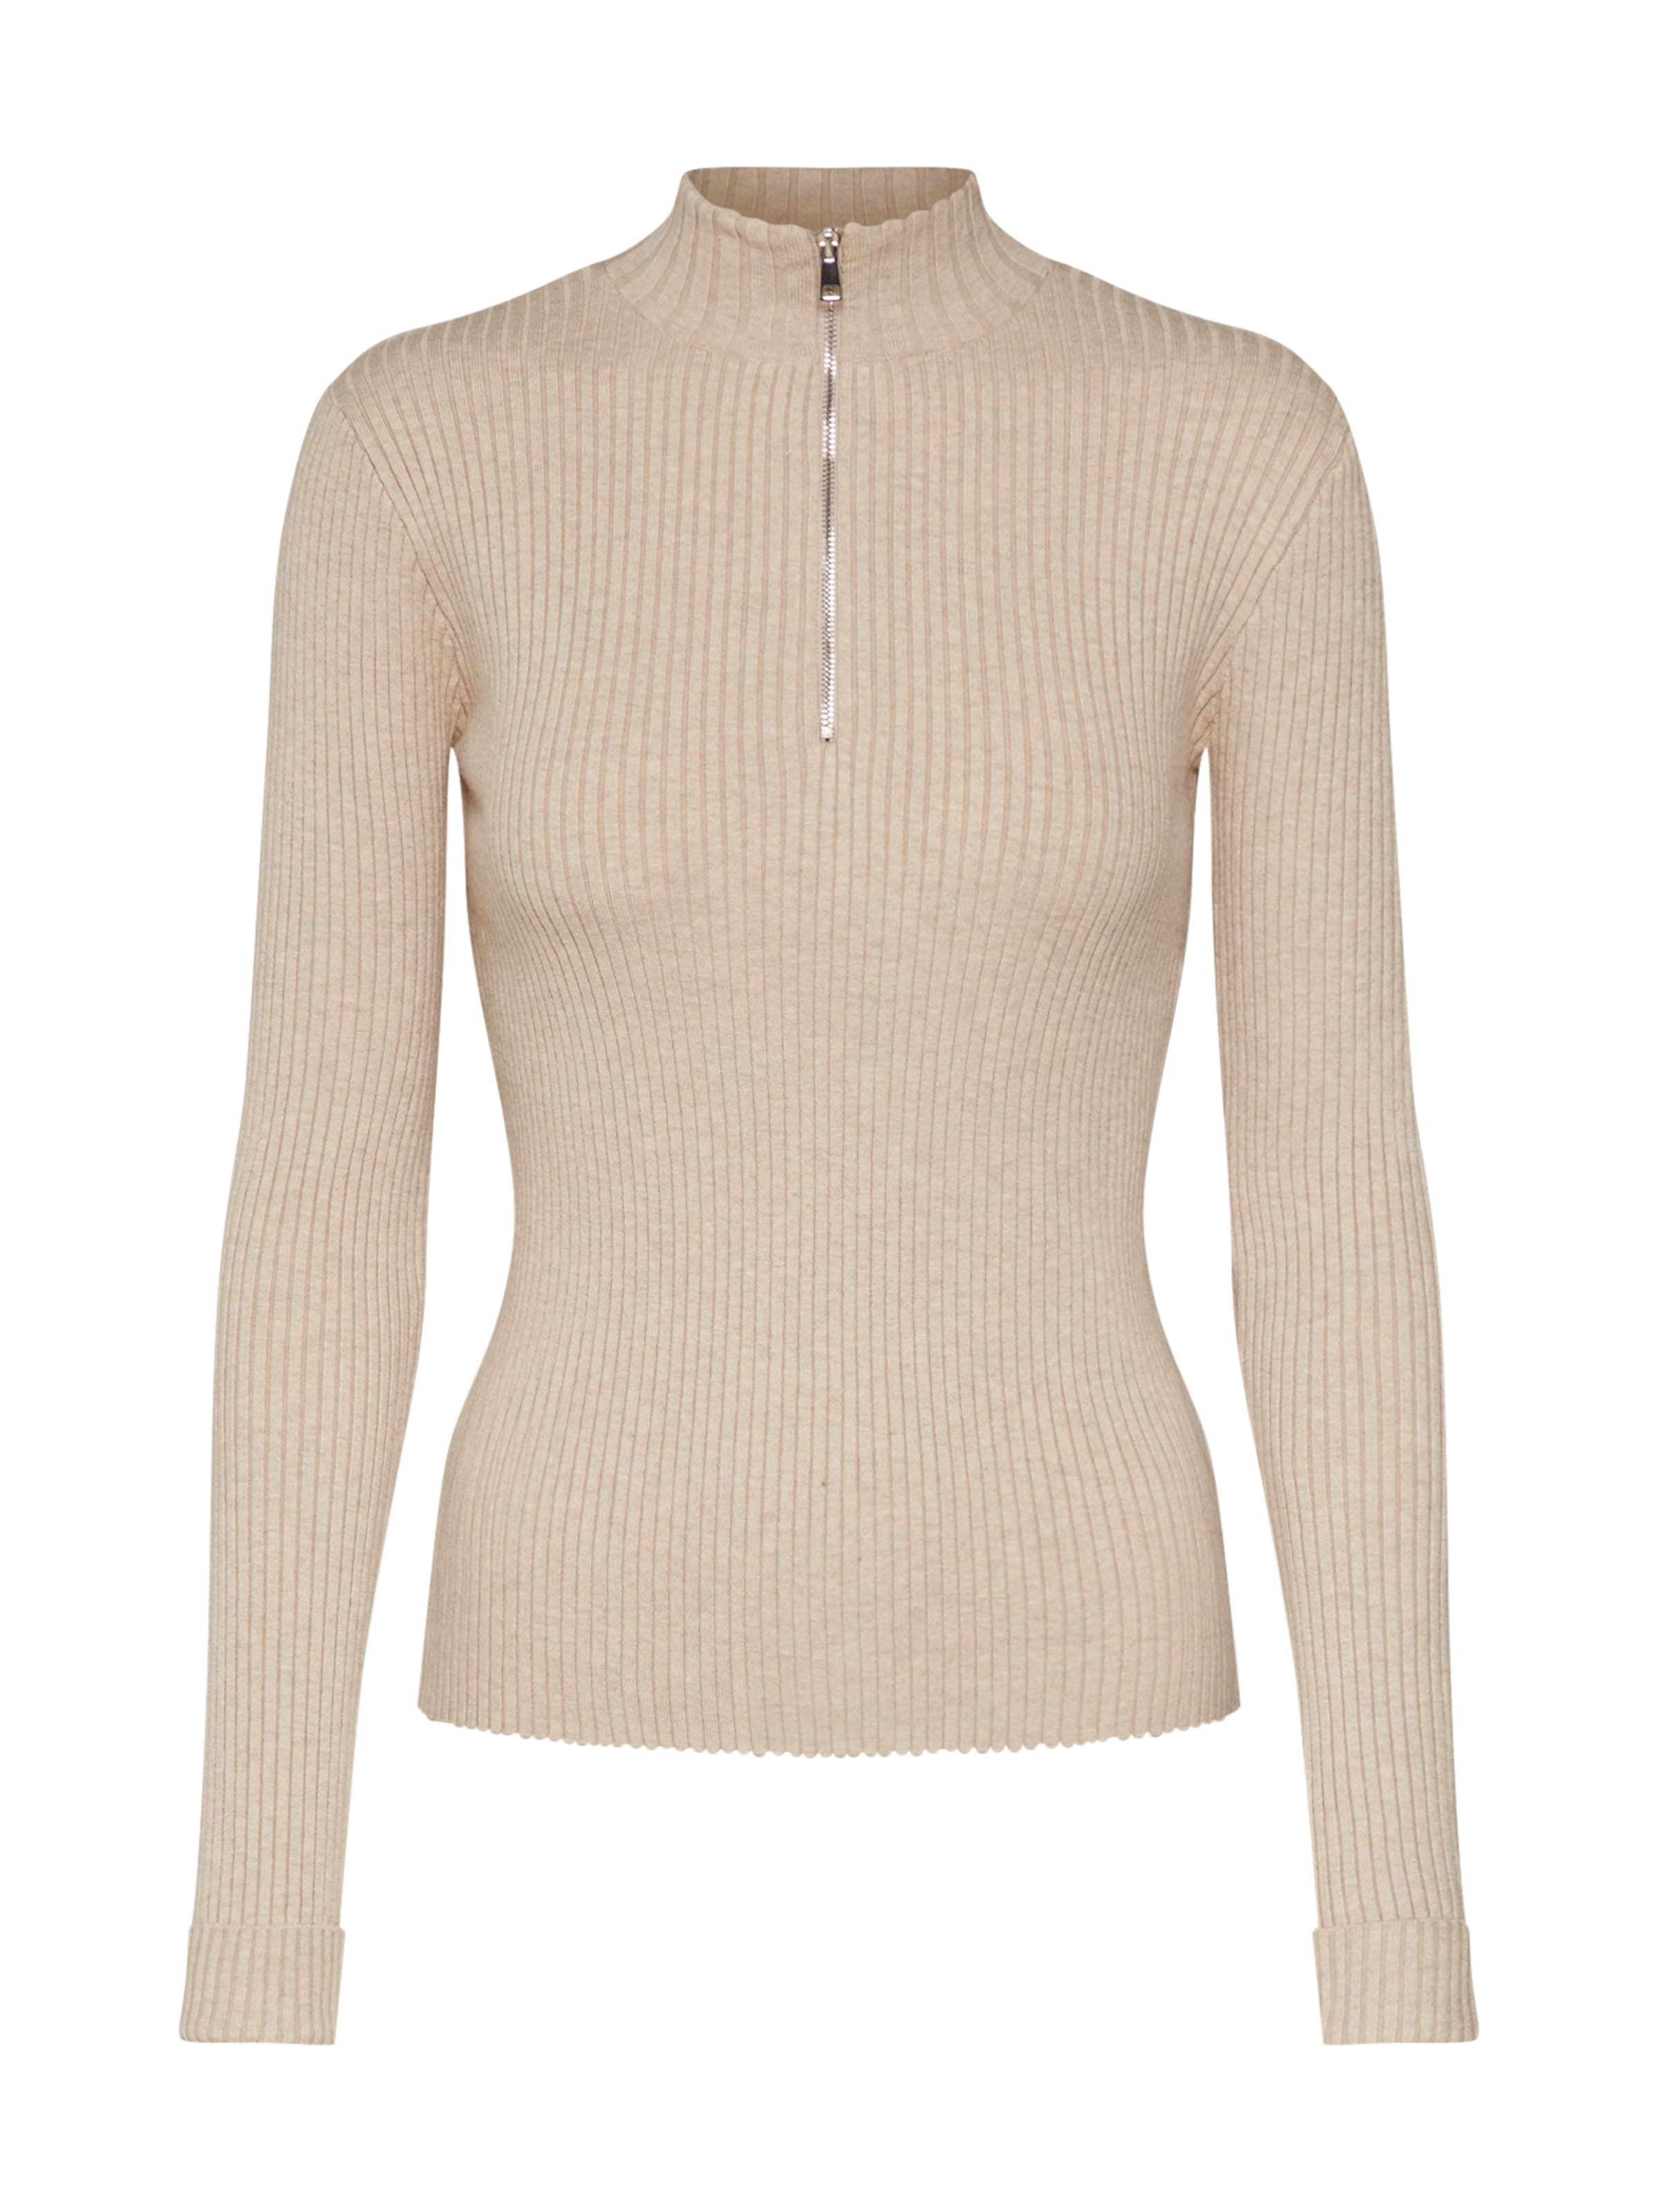 'alison' In Beige Edited Edited 'alison' Pullover In Edited Pullover Beige EYbH29eWID